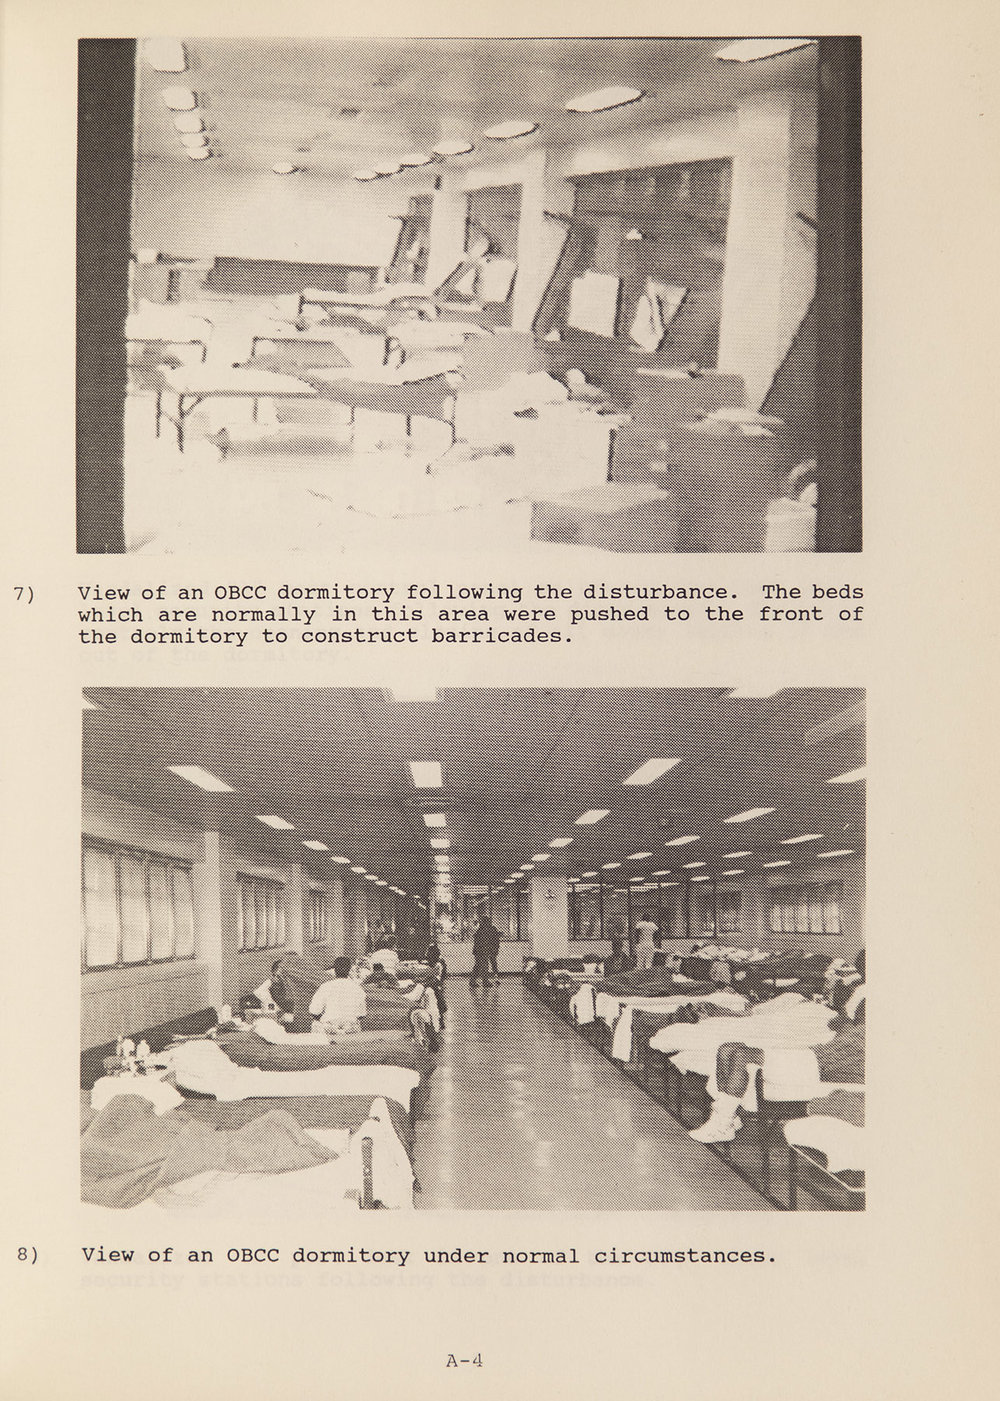 After and before scenes from  The Disturbance at the Rikers Island Otis Bantum Correctional Center, August 14, 1990: Its Causes and the Department of Correction Response . NYC Municipal Library.